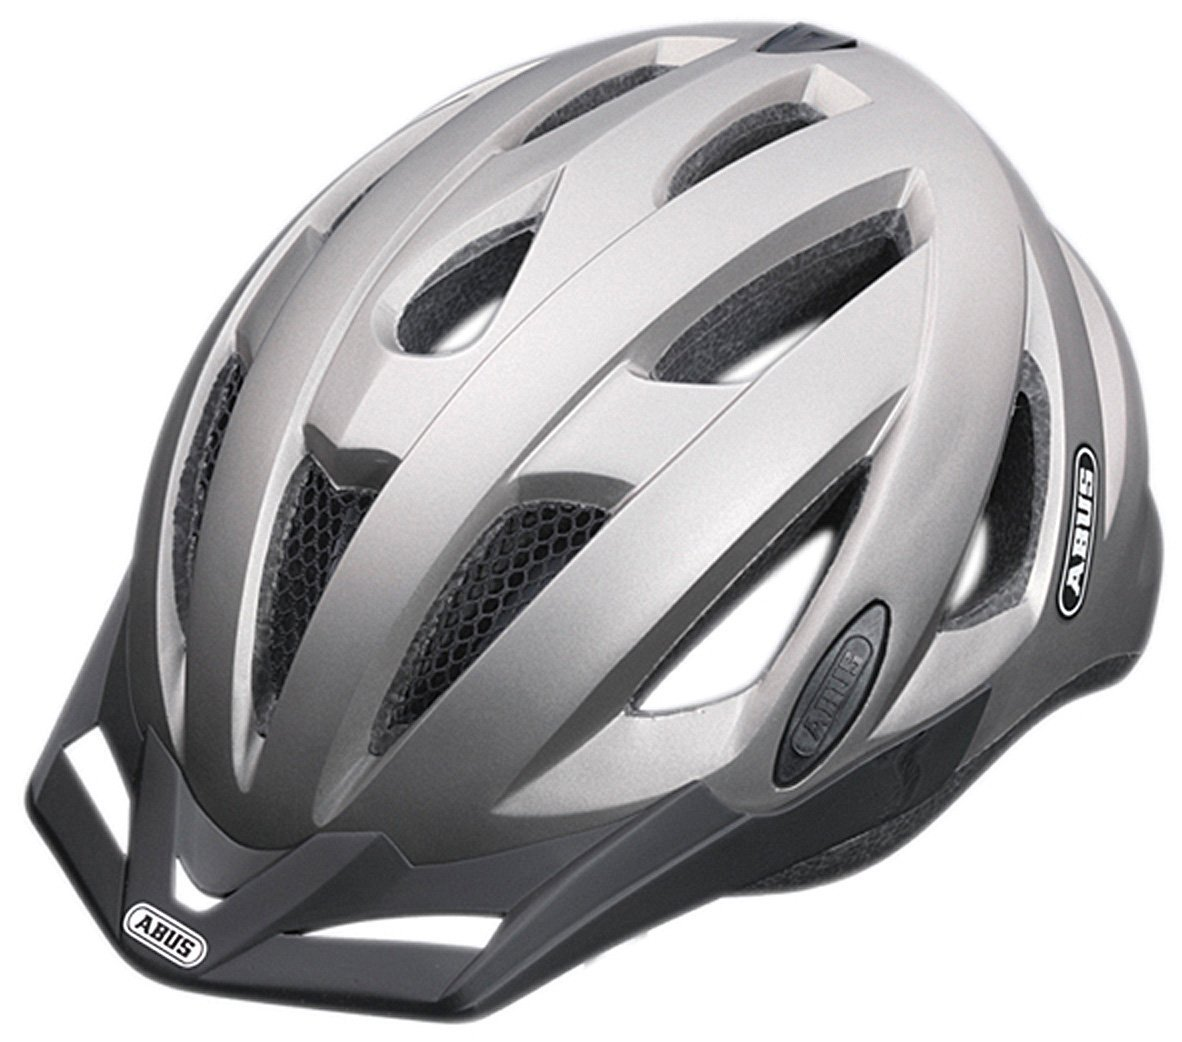 Best Selling Abus Bicycle Helmets